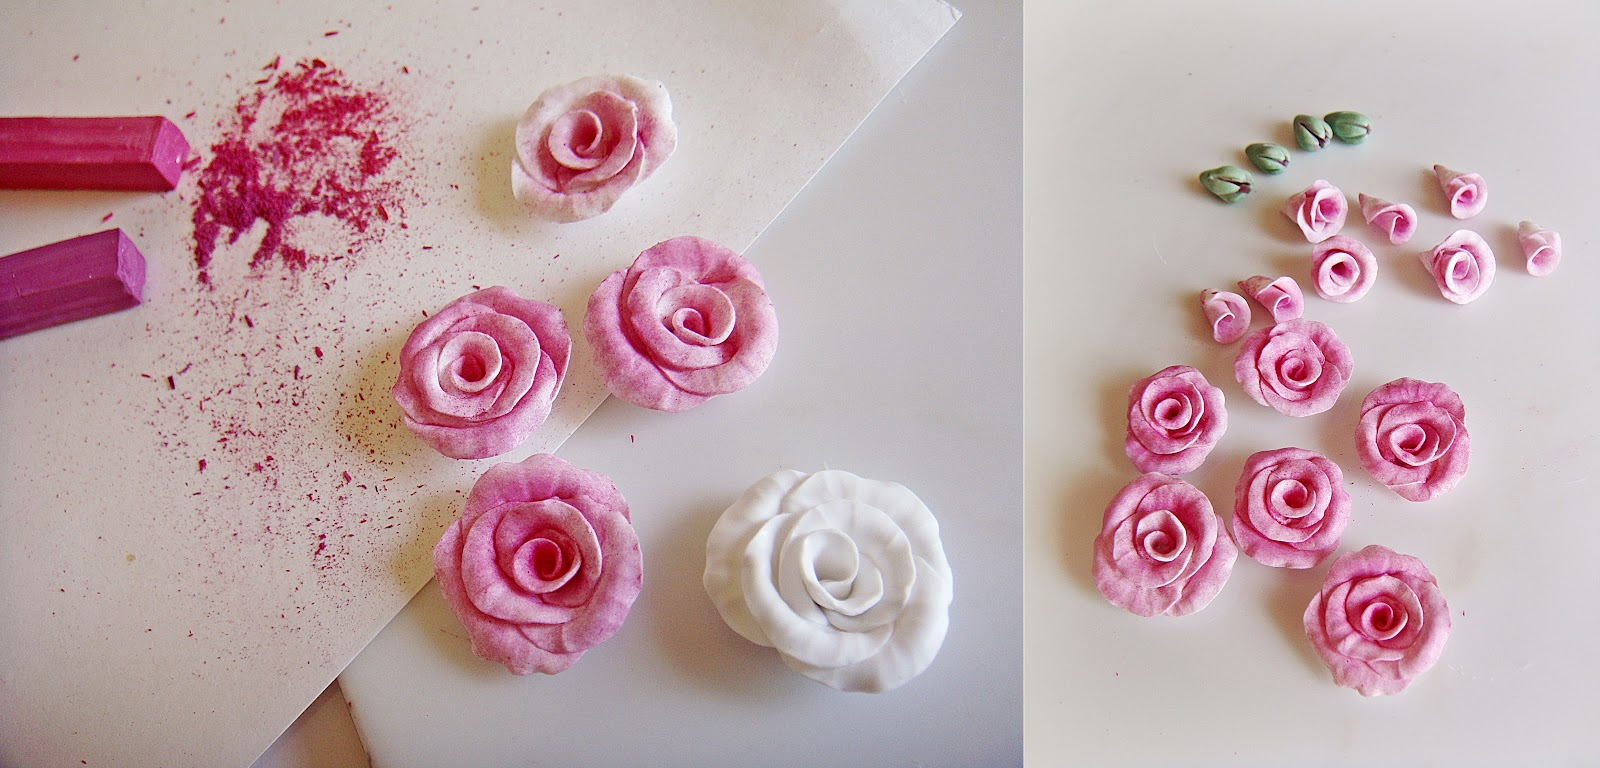 tutoriel comment faire des roses en fimo le de miss kawaii